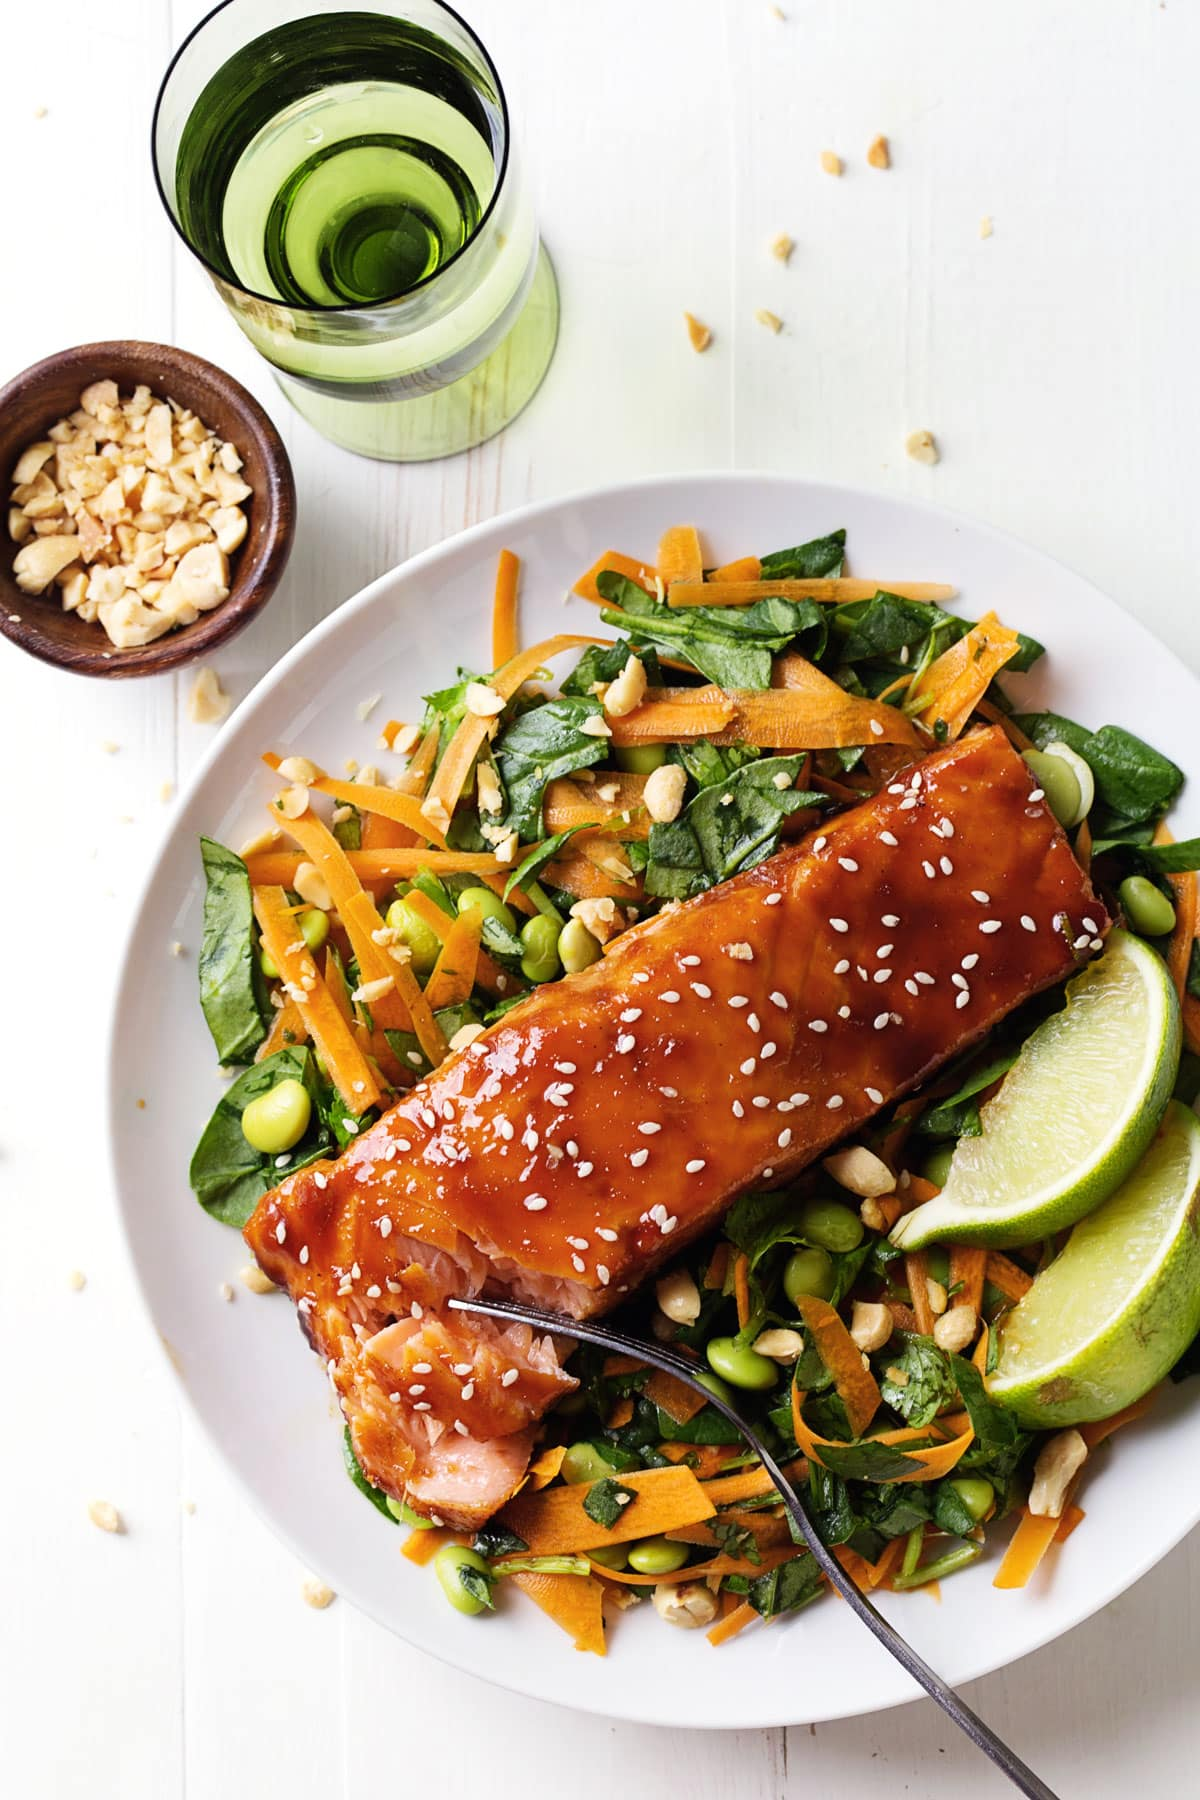 Simple Hoisin Glazed Salmon